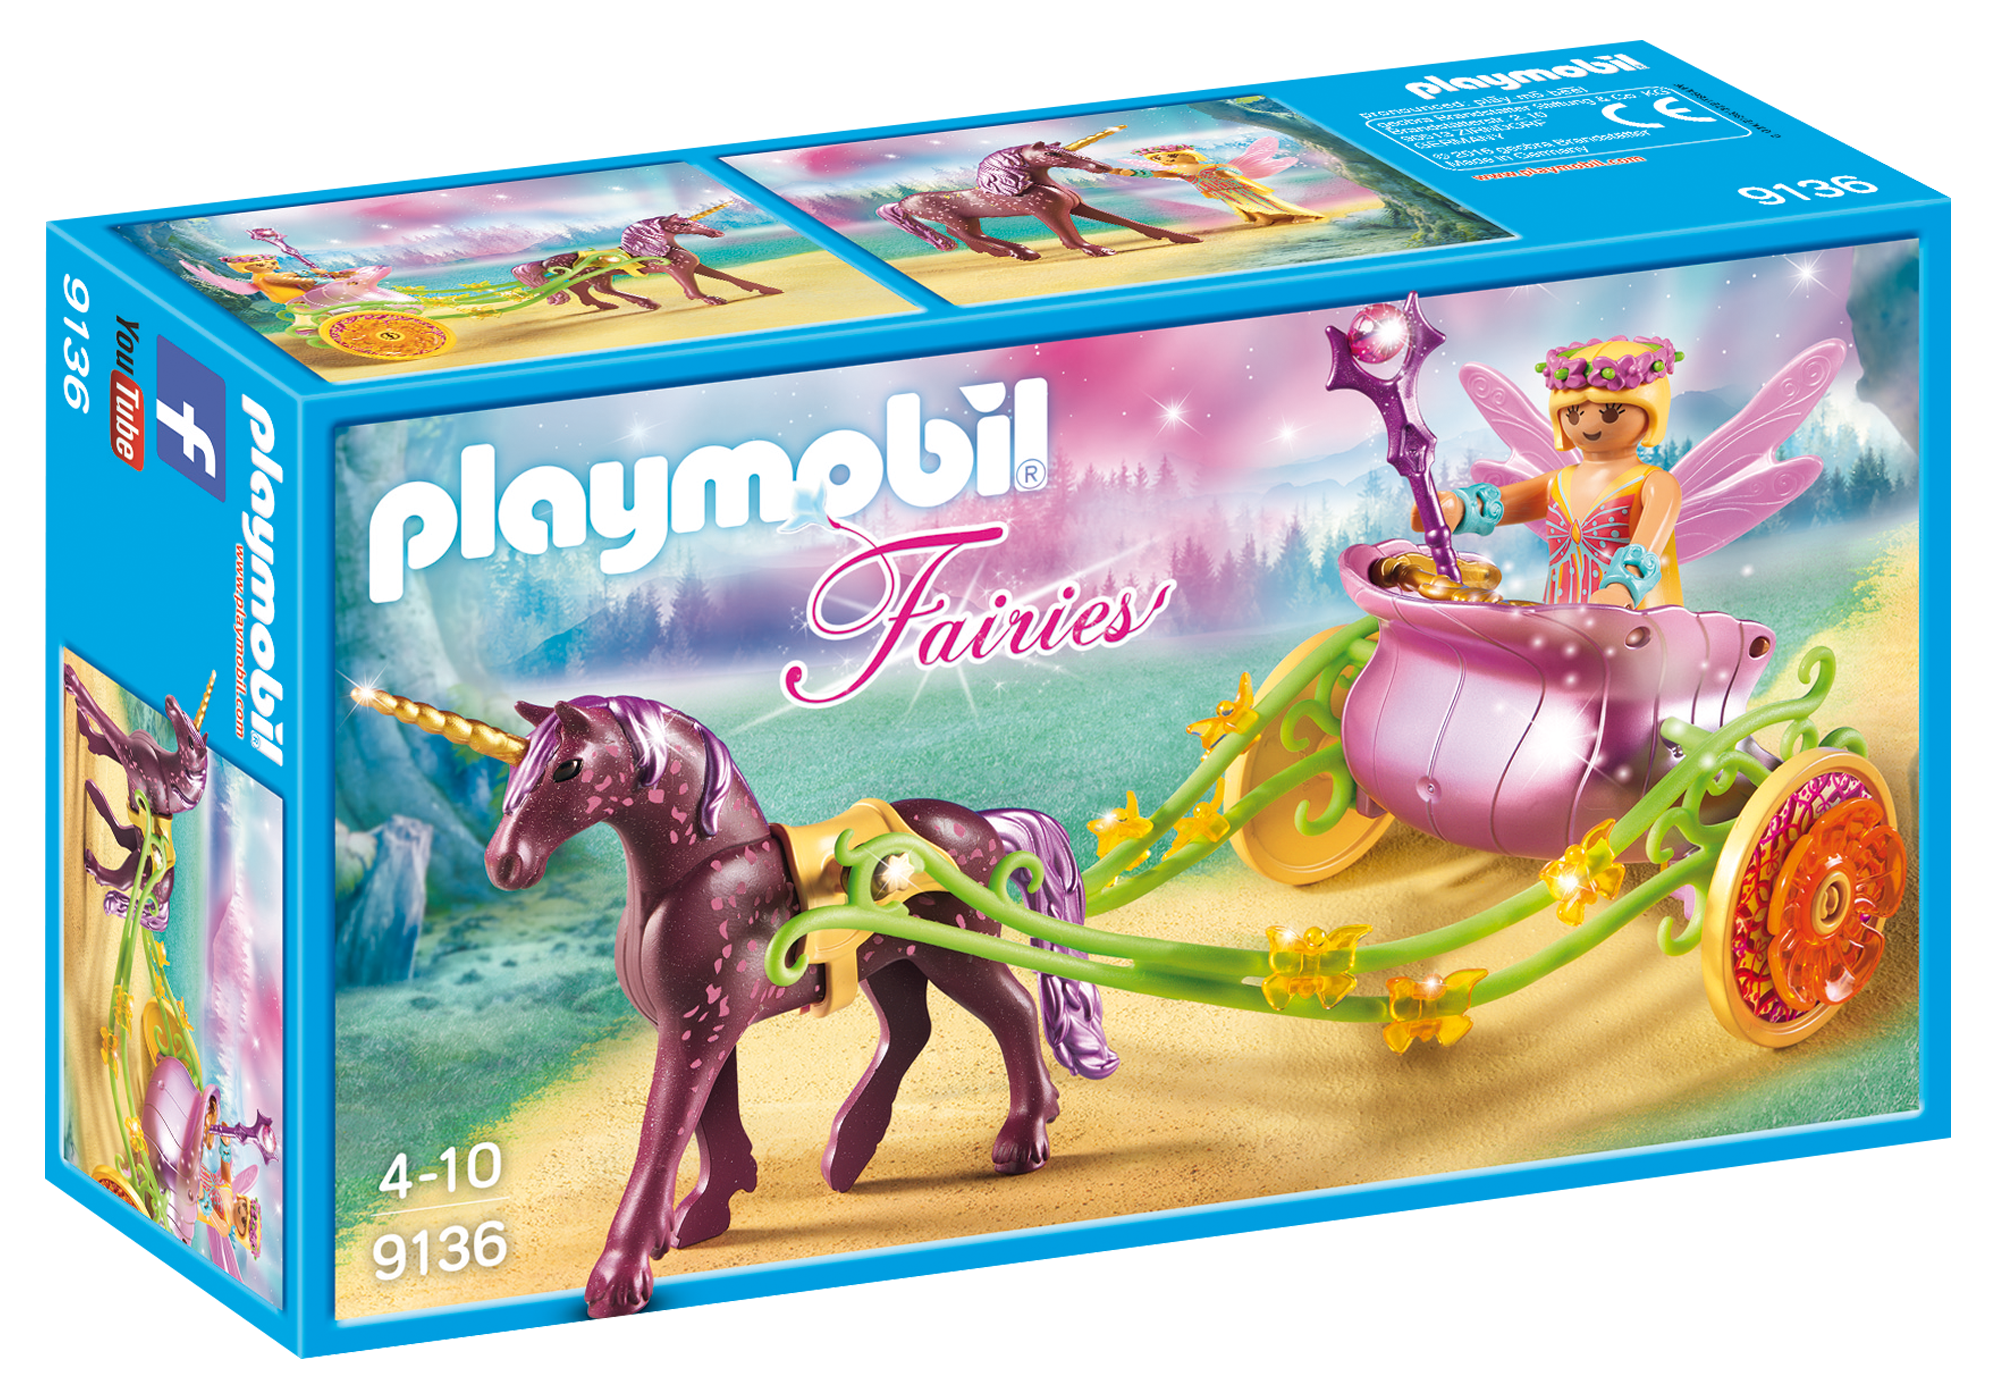 http://media.playmobil.com/i/playmobil/9136_product_box_front